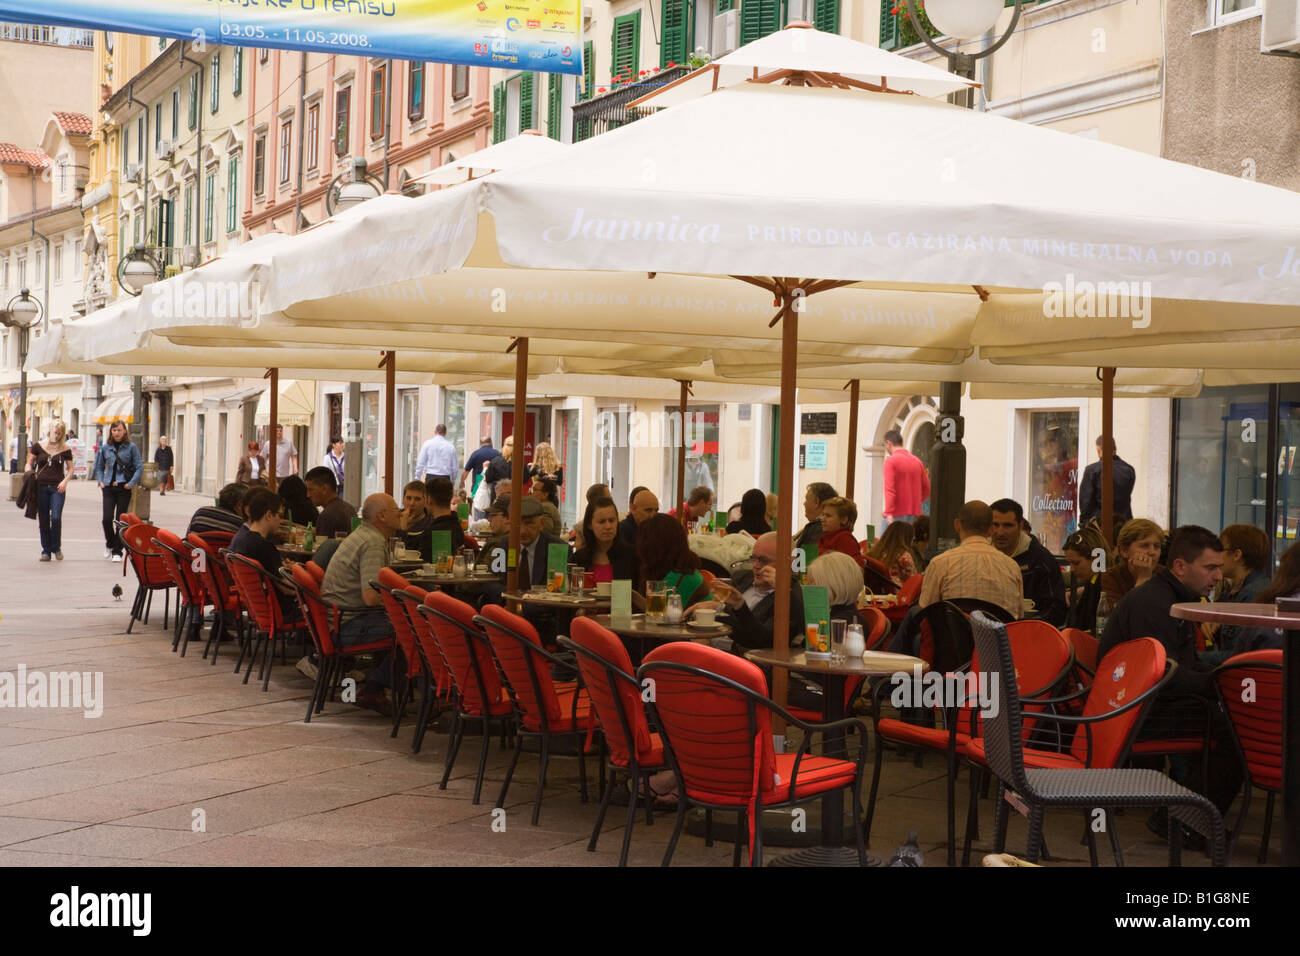 People Dining And Drinking Under Sun Umbrellas In Outdoor Cafe In Stock Photo Alamy